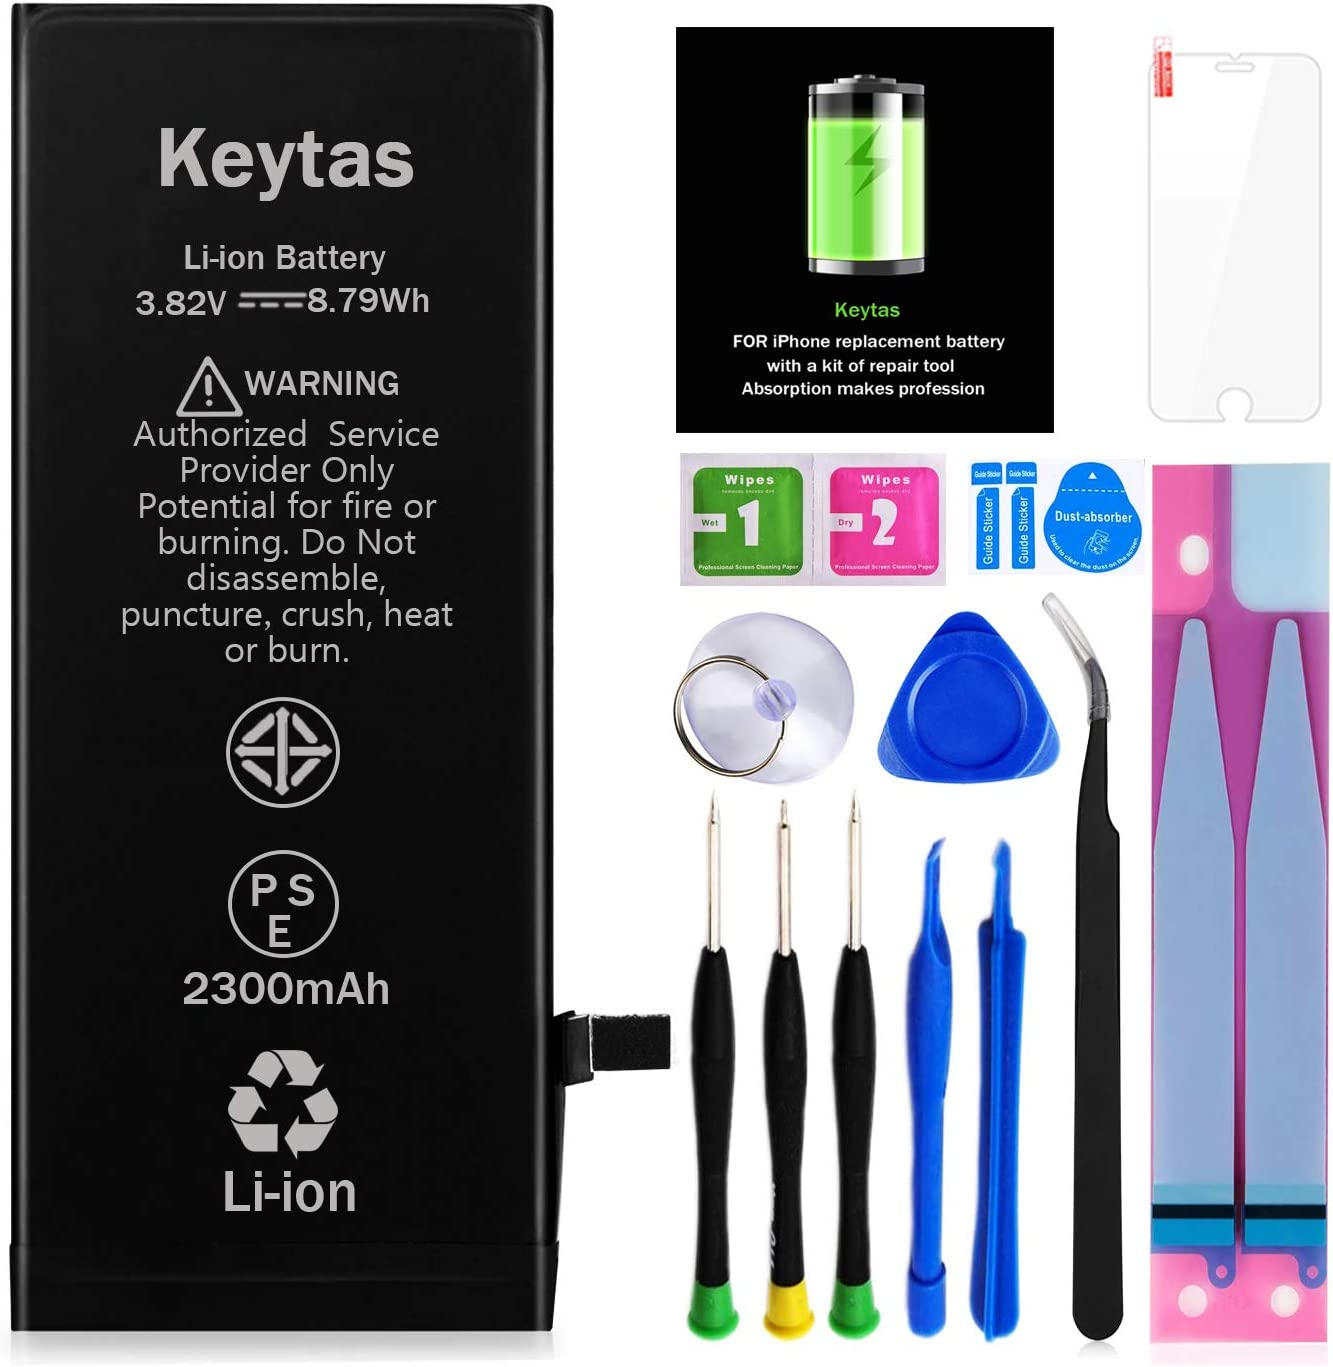 Keytas 2300mAh Replacement Battery Compatible with iPhone 6, for iPhone 6 High Capacity Replacement Battery with Complete Tools Kit and Screen Protector